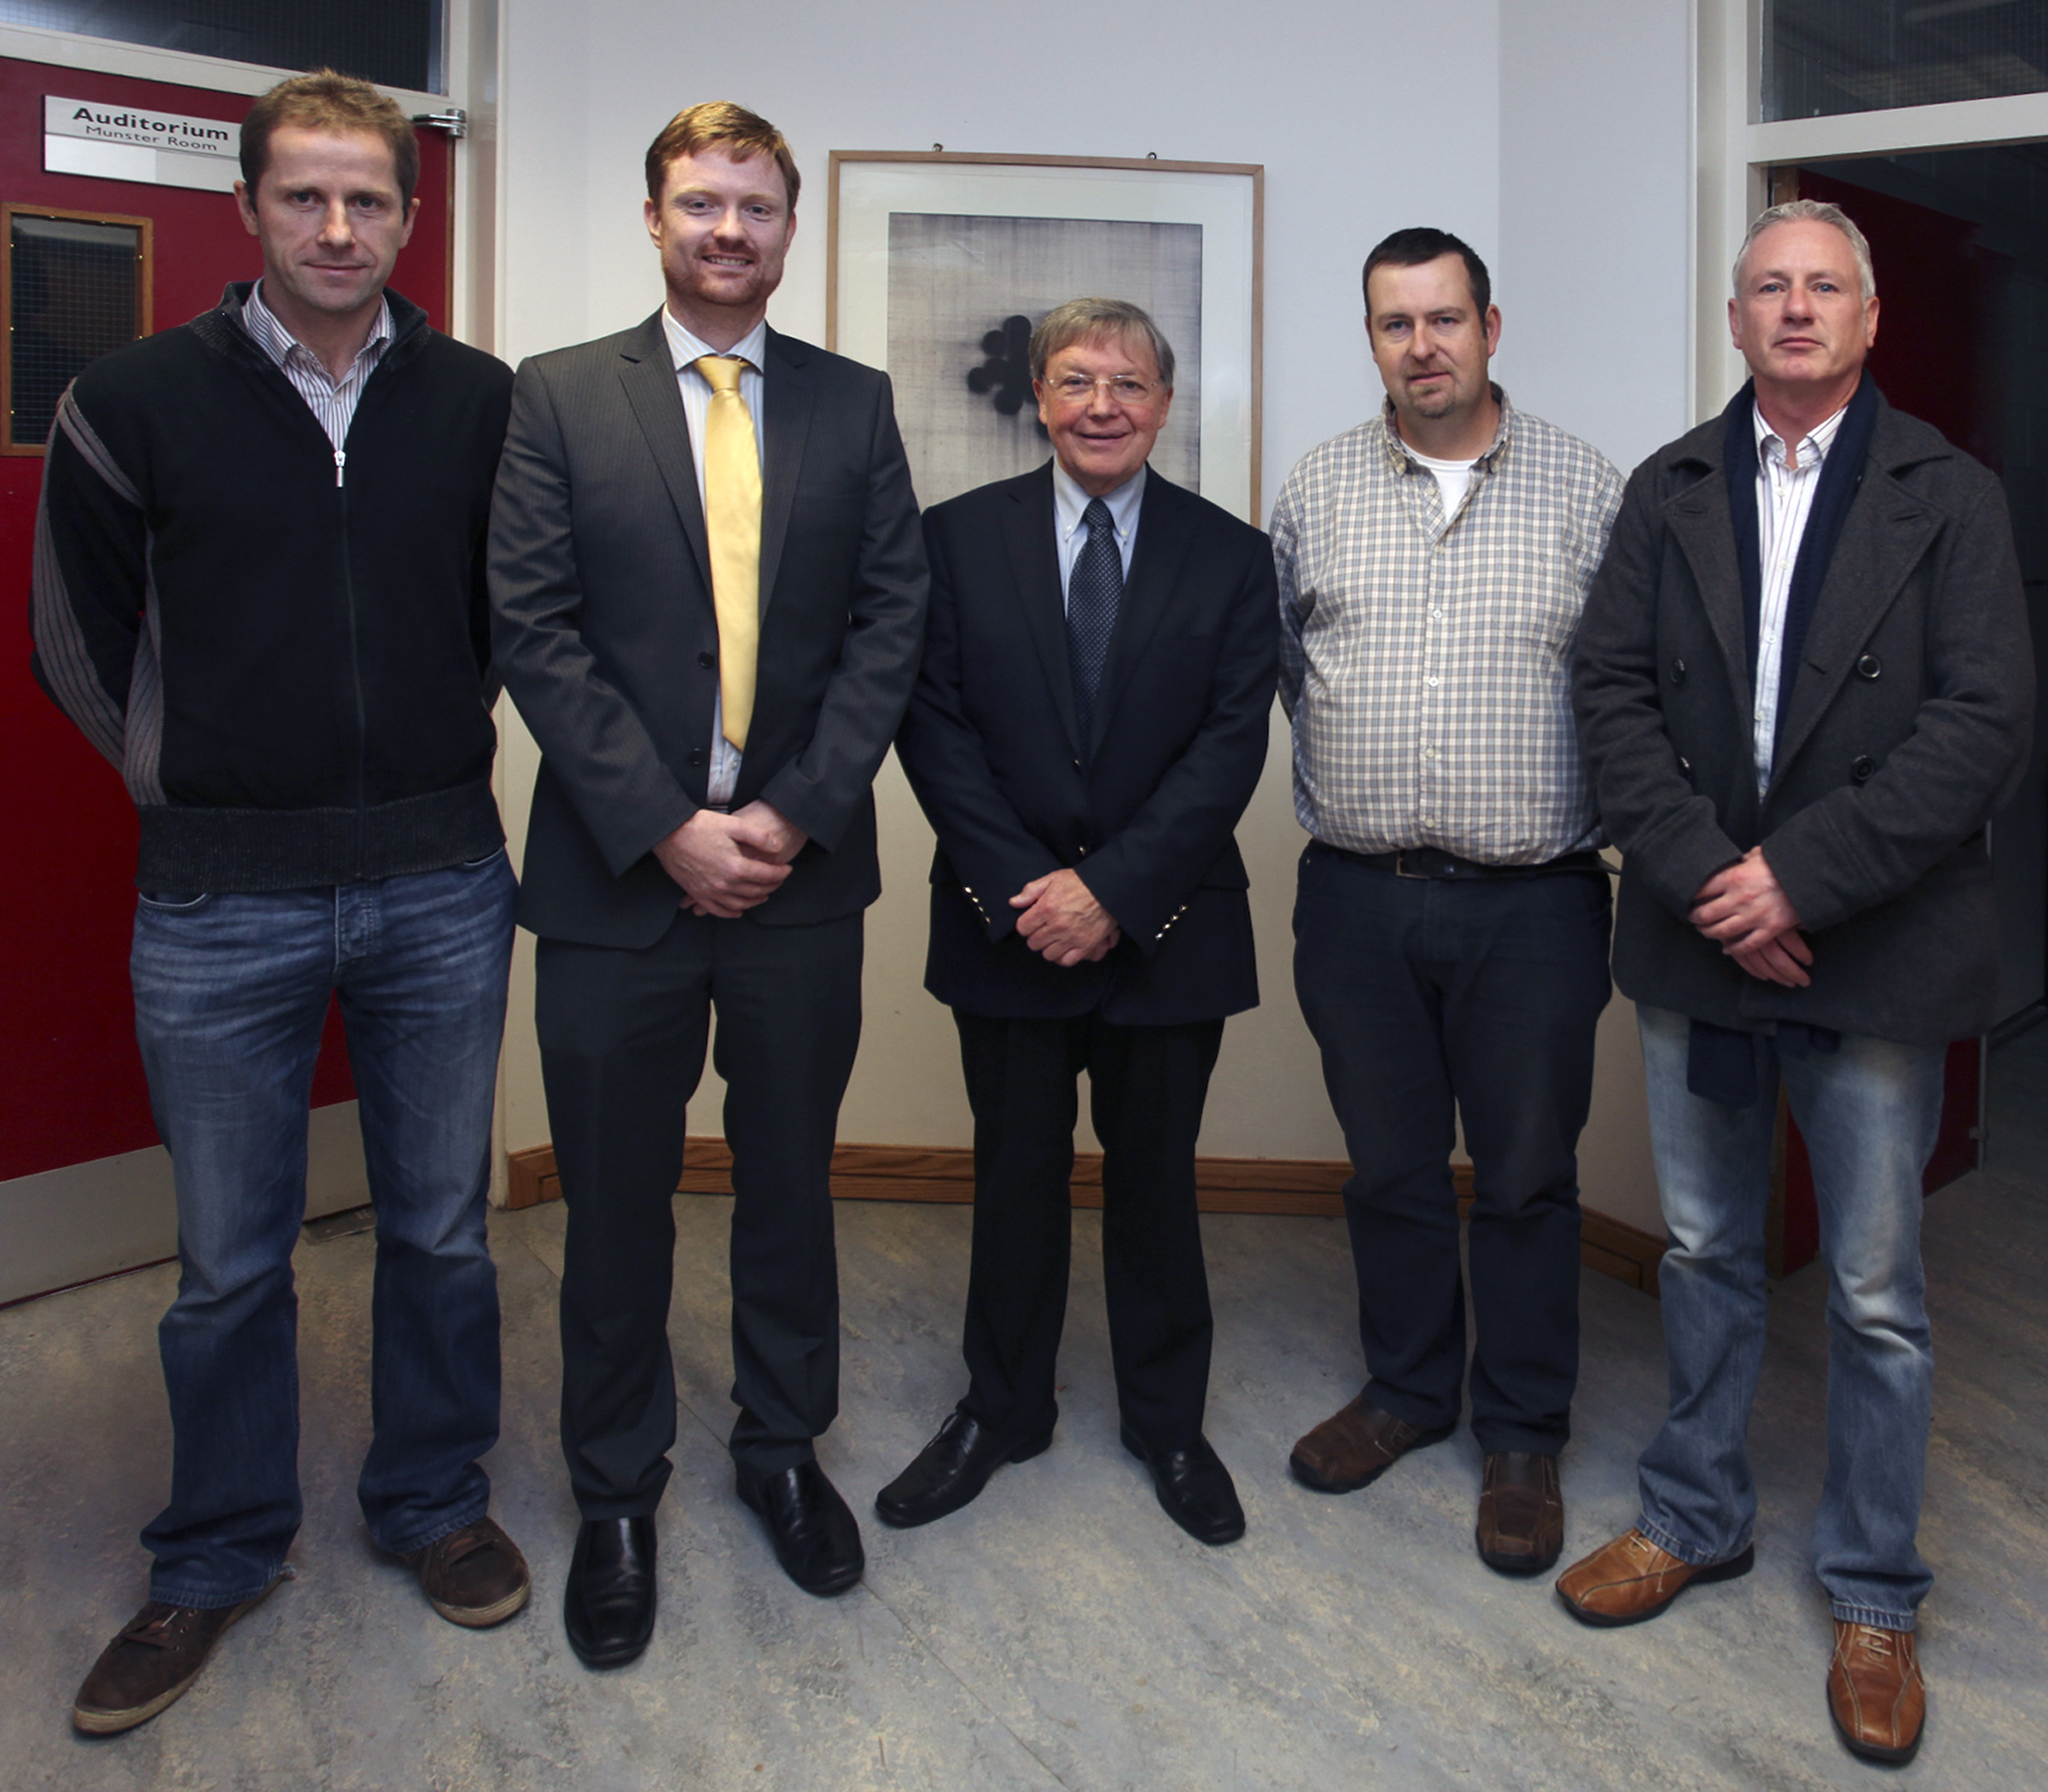 Pictured (L - R): Mr. Colm Tynan, Dr Derek Sinnott, Dr Ken Whelan, Mr. Alan O'Sullivan & Mr. Jason O'Riordan